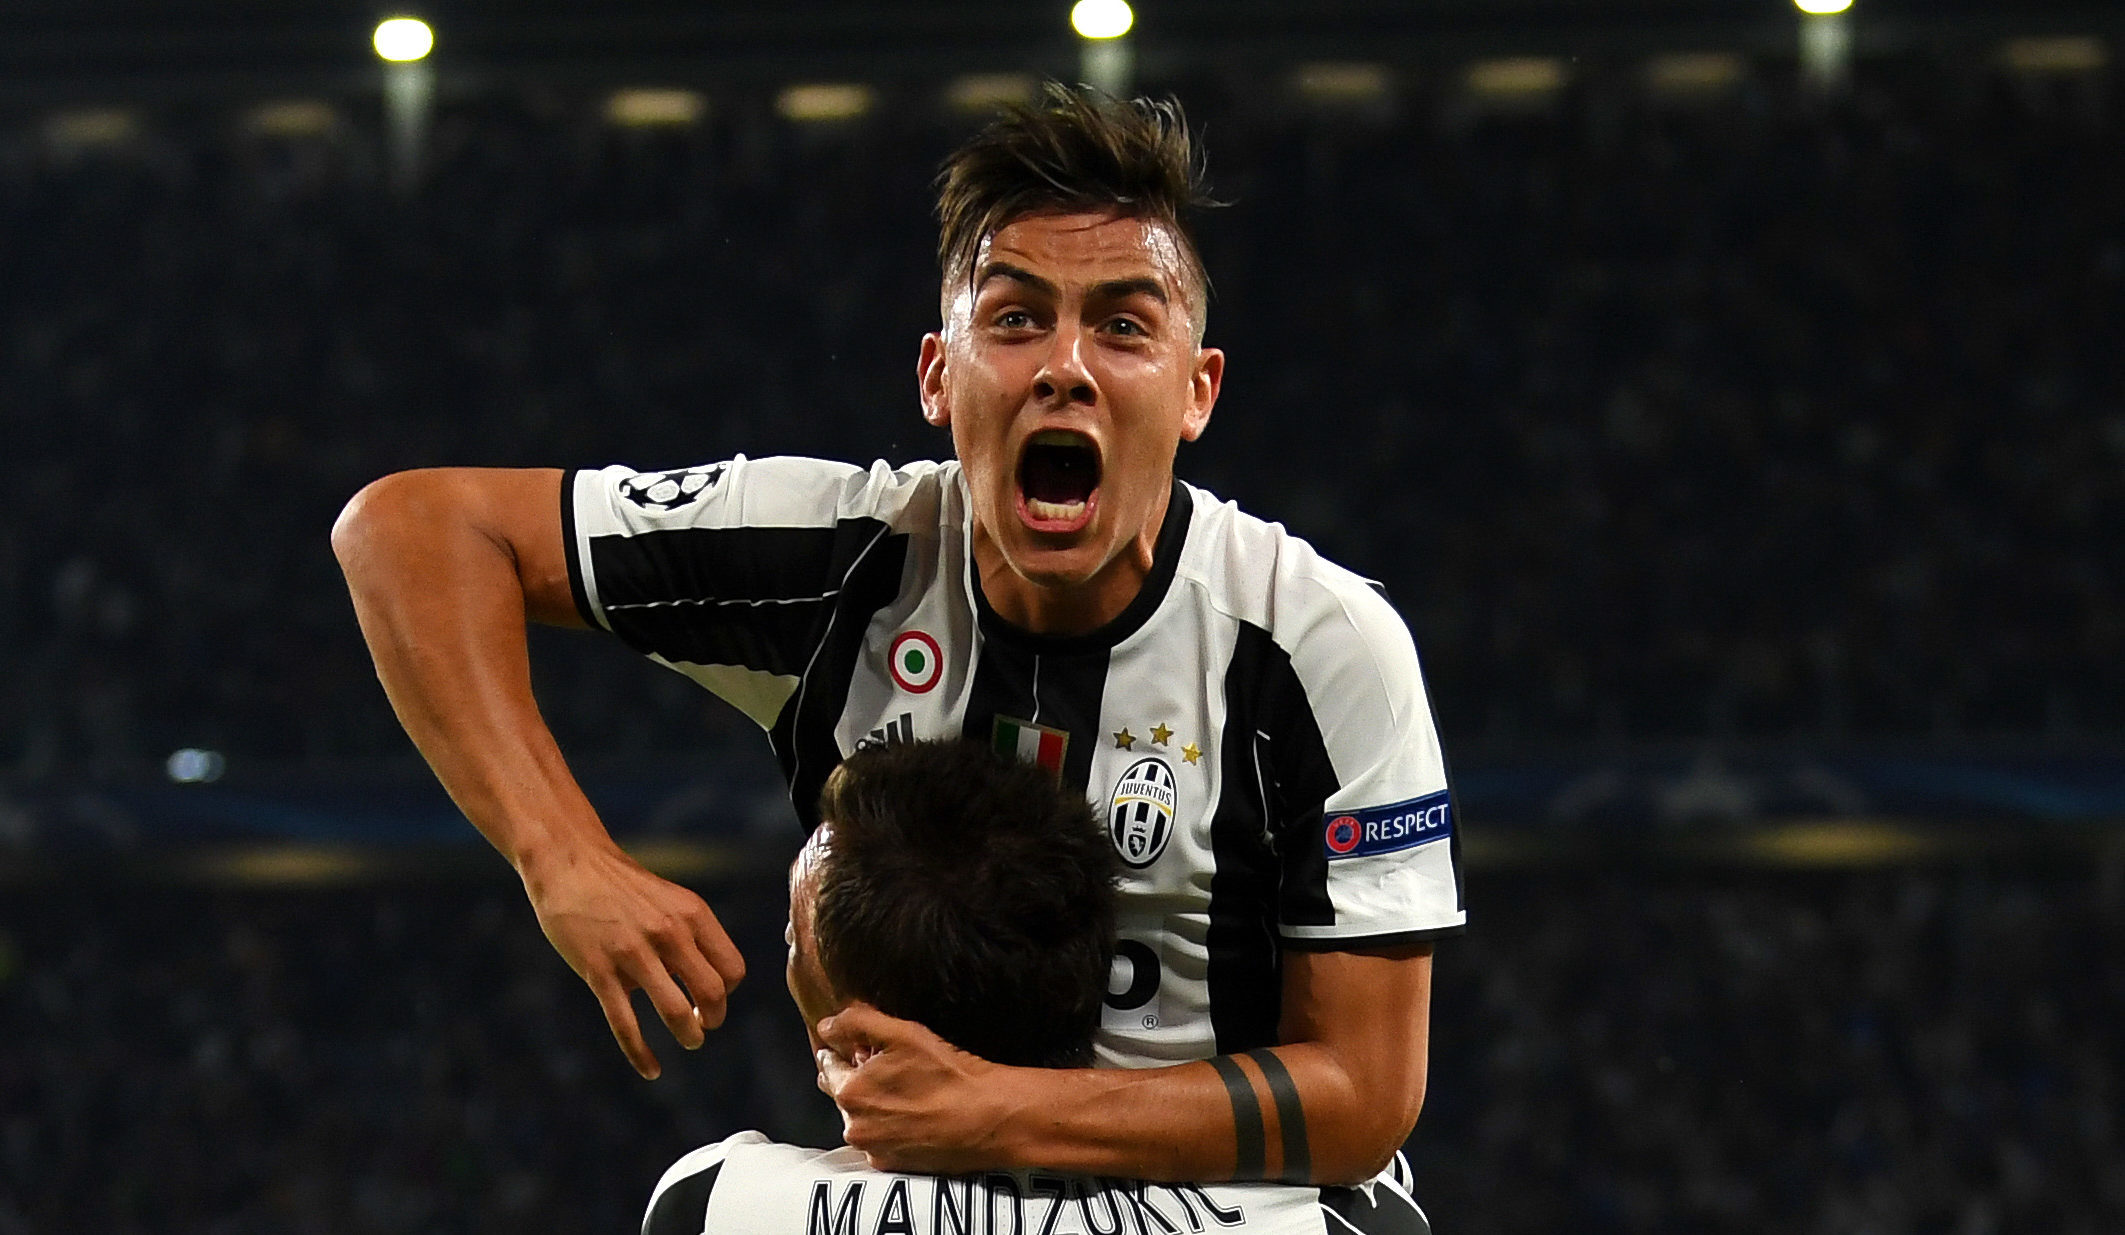 Paulo Dybala of Juventus (Mike Hewitt/Getty Images)